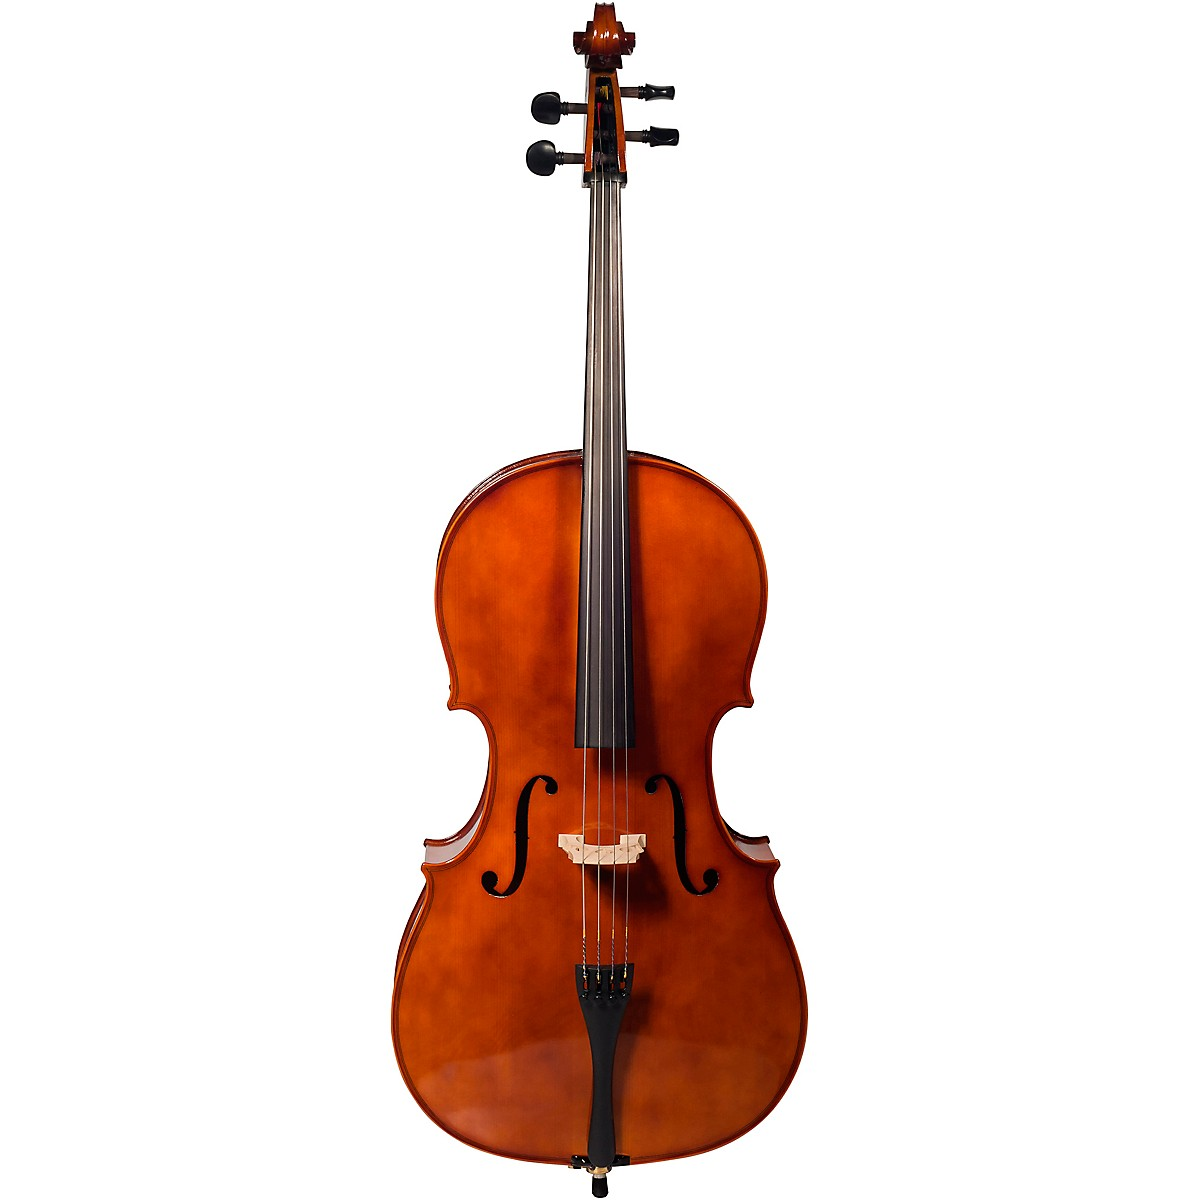 STROBEL MC-160 Student Series 4/4 Size Hybrid Cello Outfit